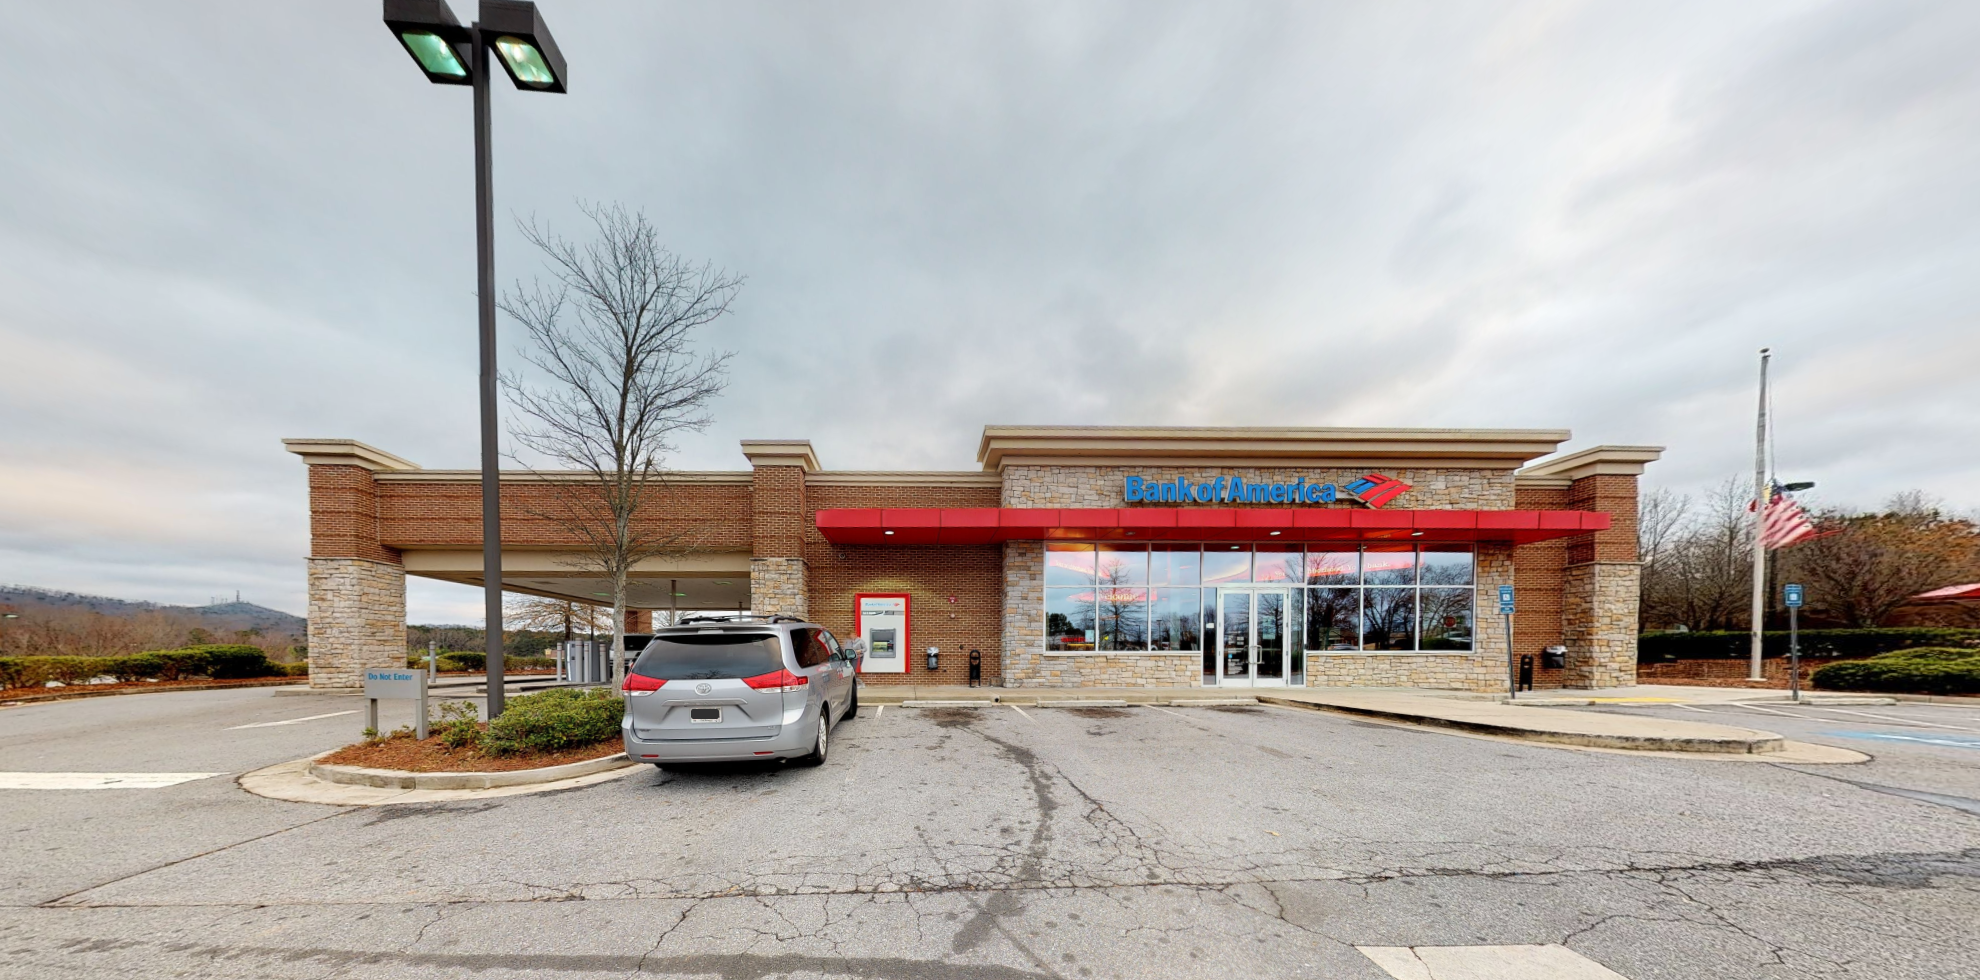 Bank of America financial center with drive-thru ATM   12170 Highway 92, Woodstock, GA 30188